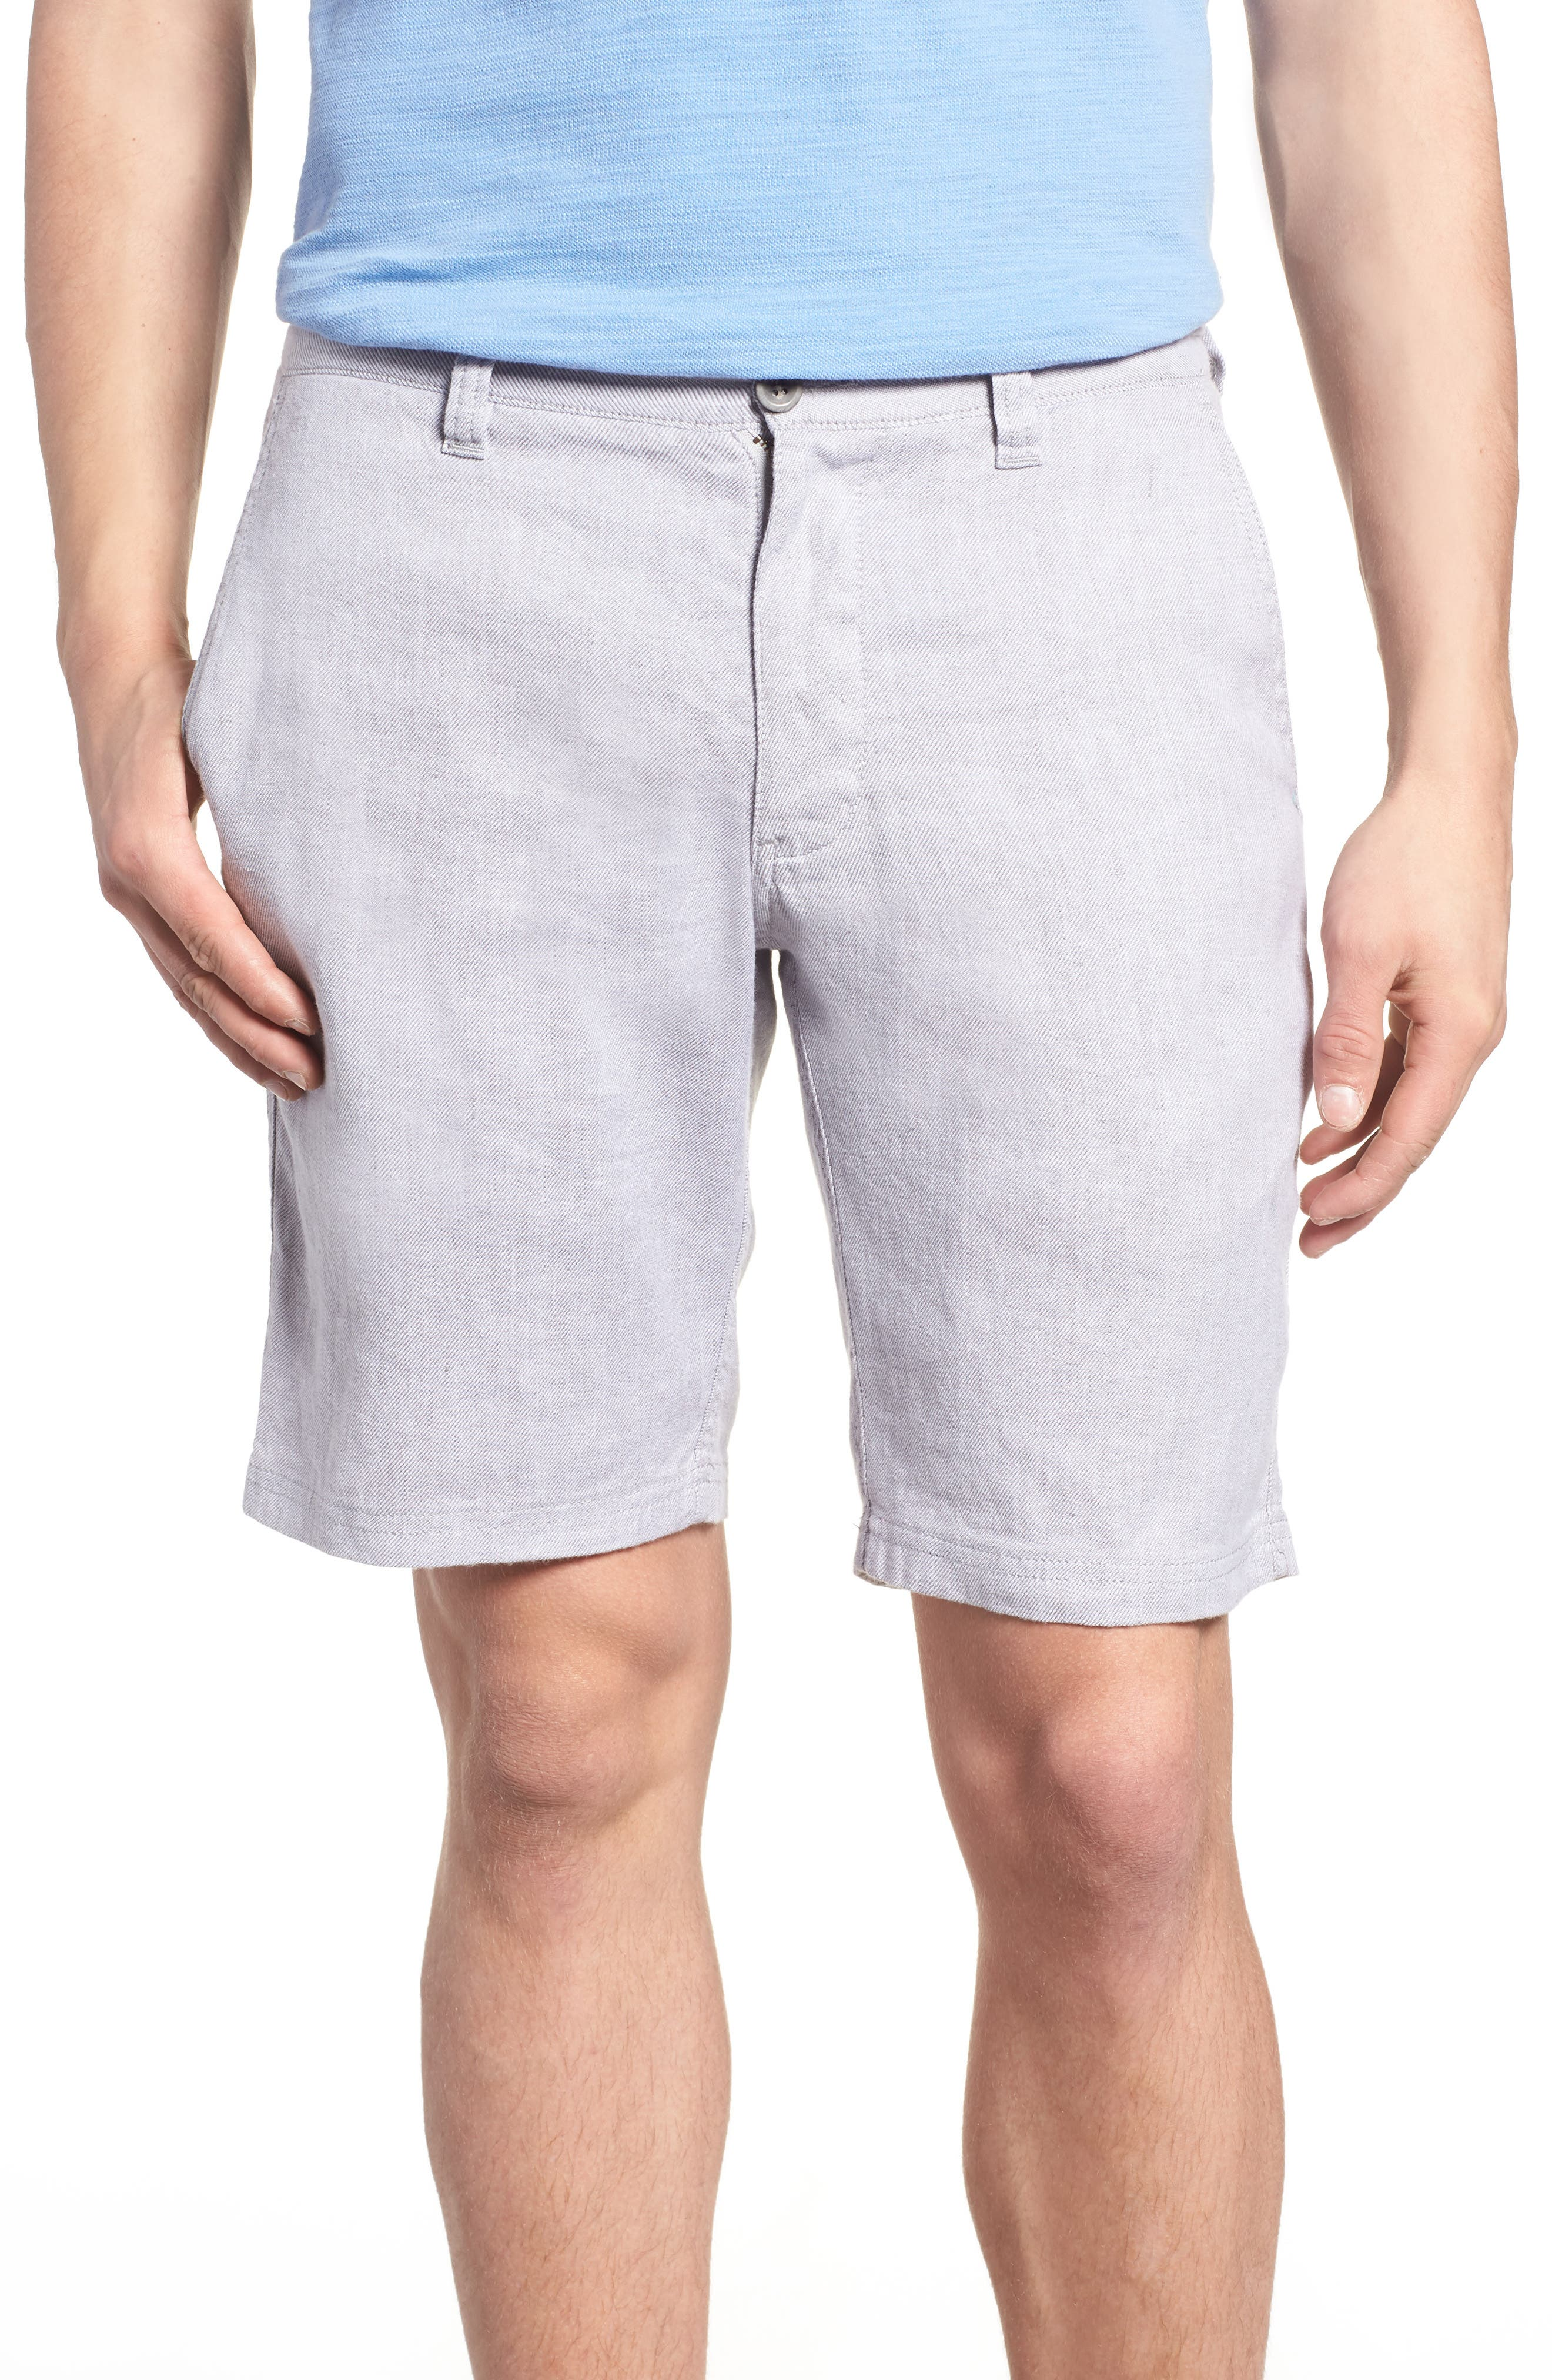 Beach Linen Blend Shorts,                             Main thumbnail 1, color,                             050